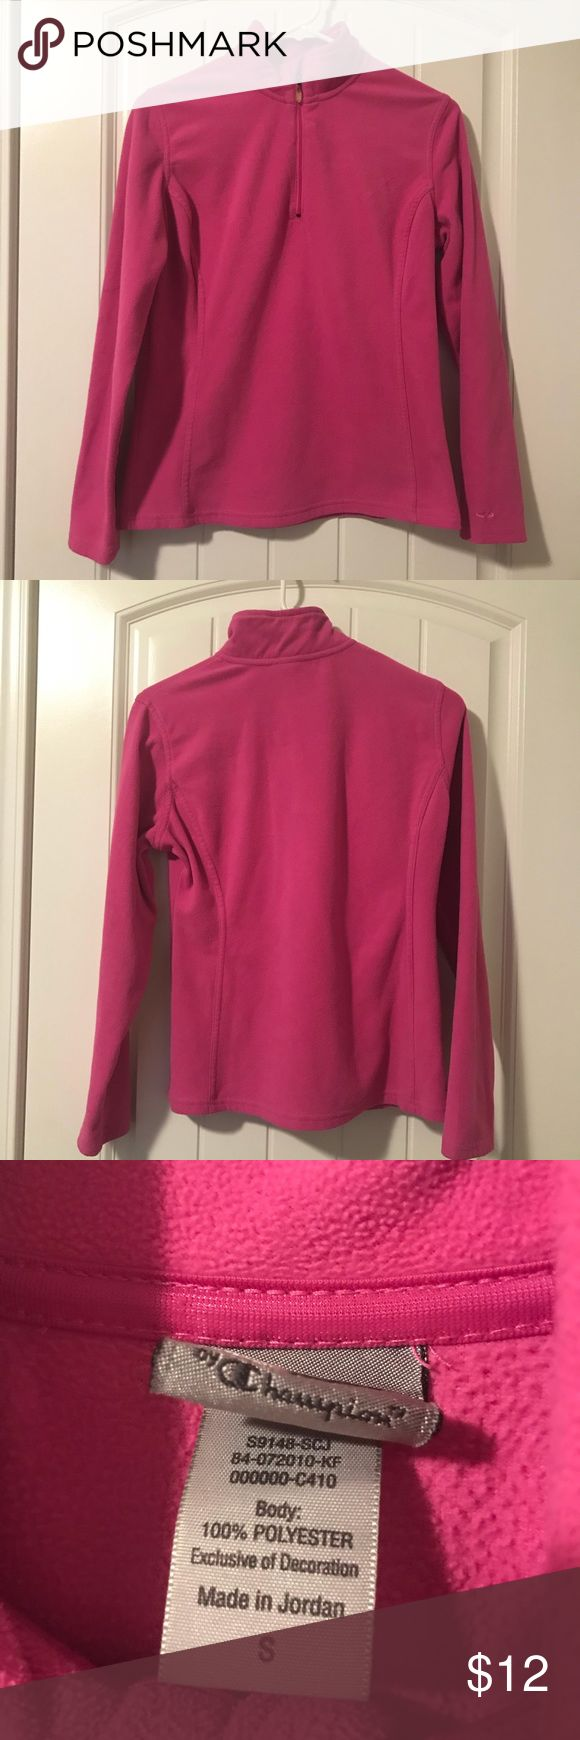 Pink C9 by Champion Pullover Pink C9 by Champion quarter zip fleece pullover, size S. Very cozy! Champion Jackets & Coats